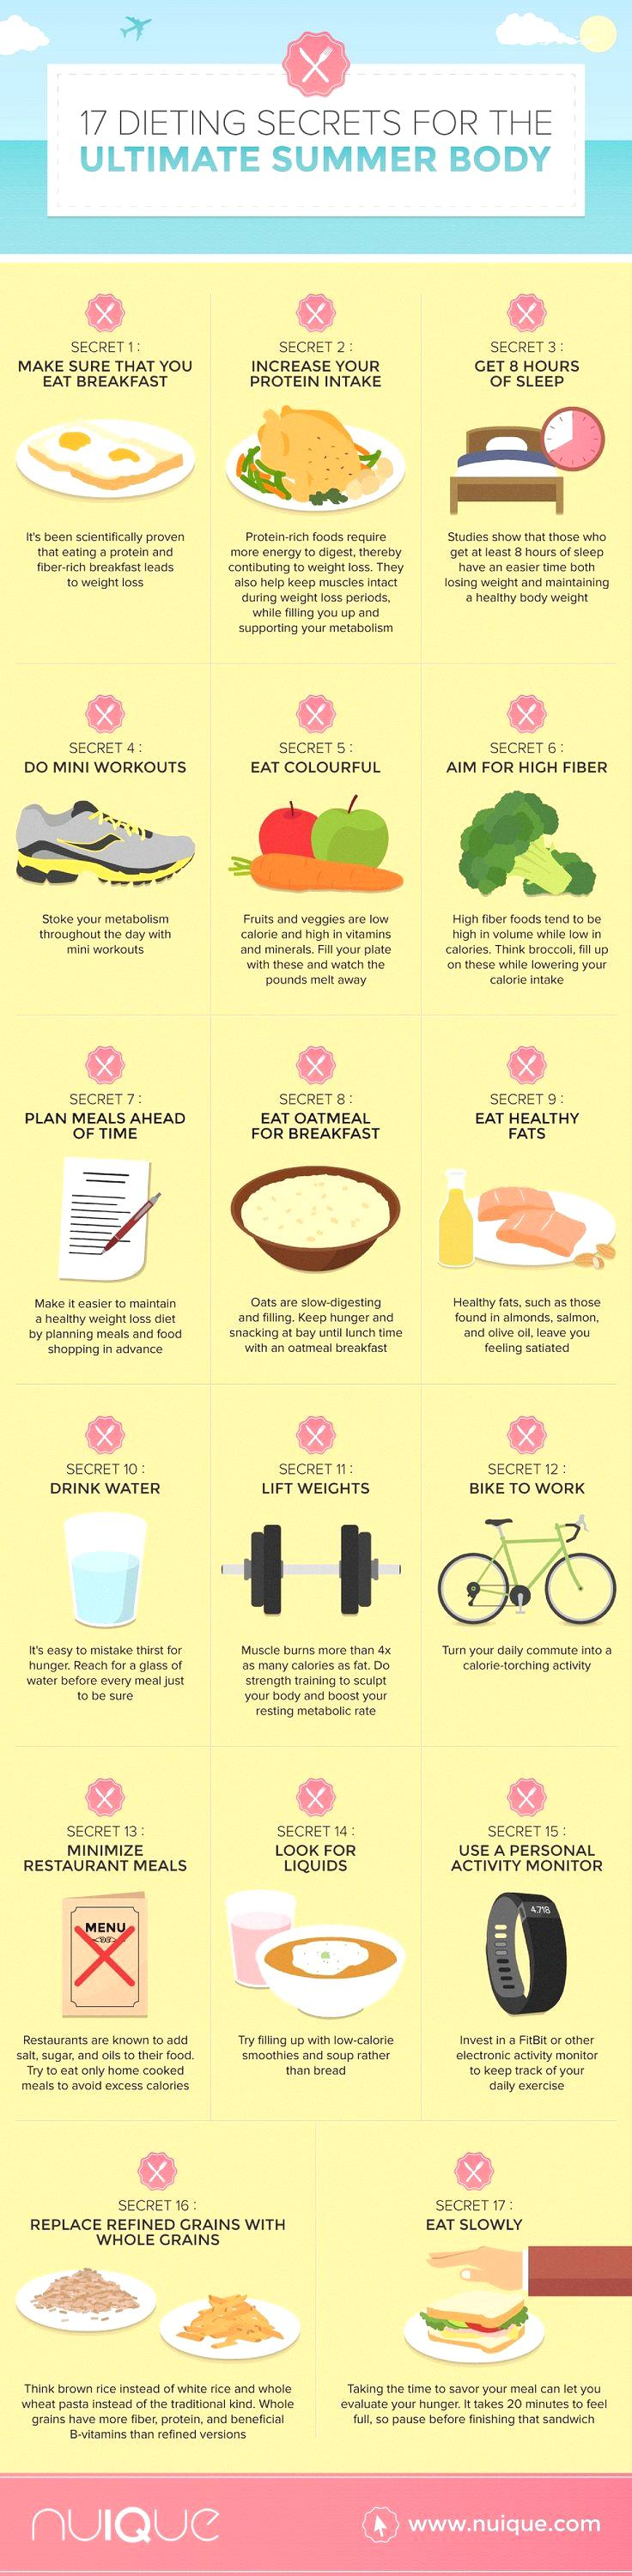 Diy Smoothie Cleanse Weight Loss